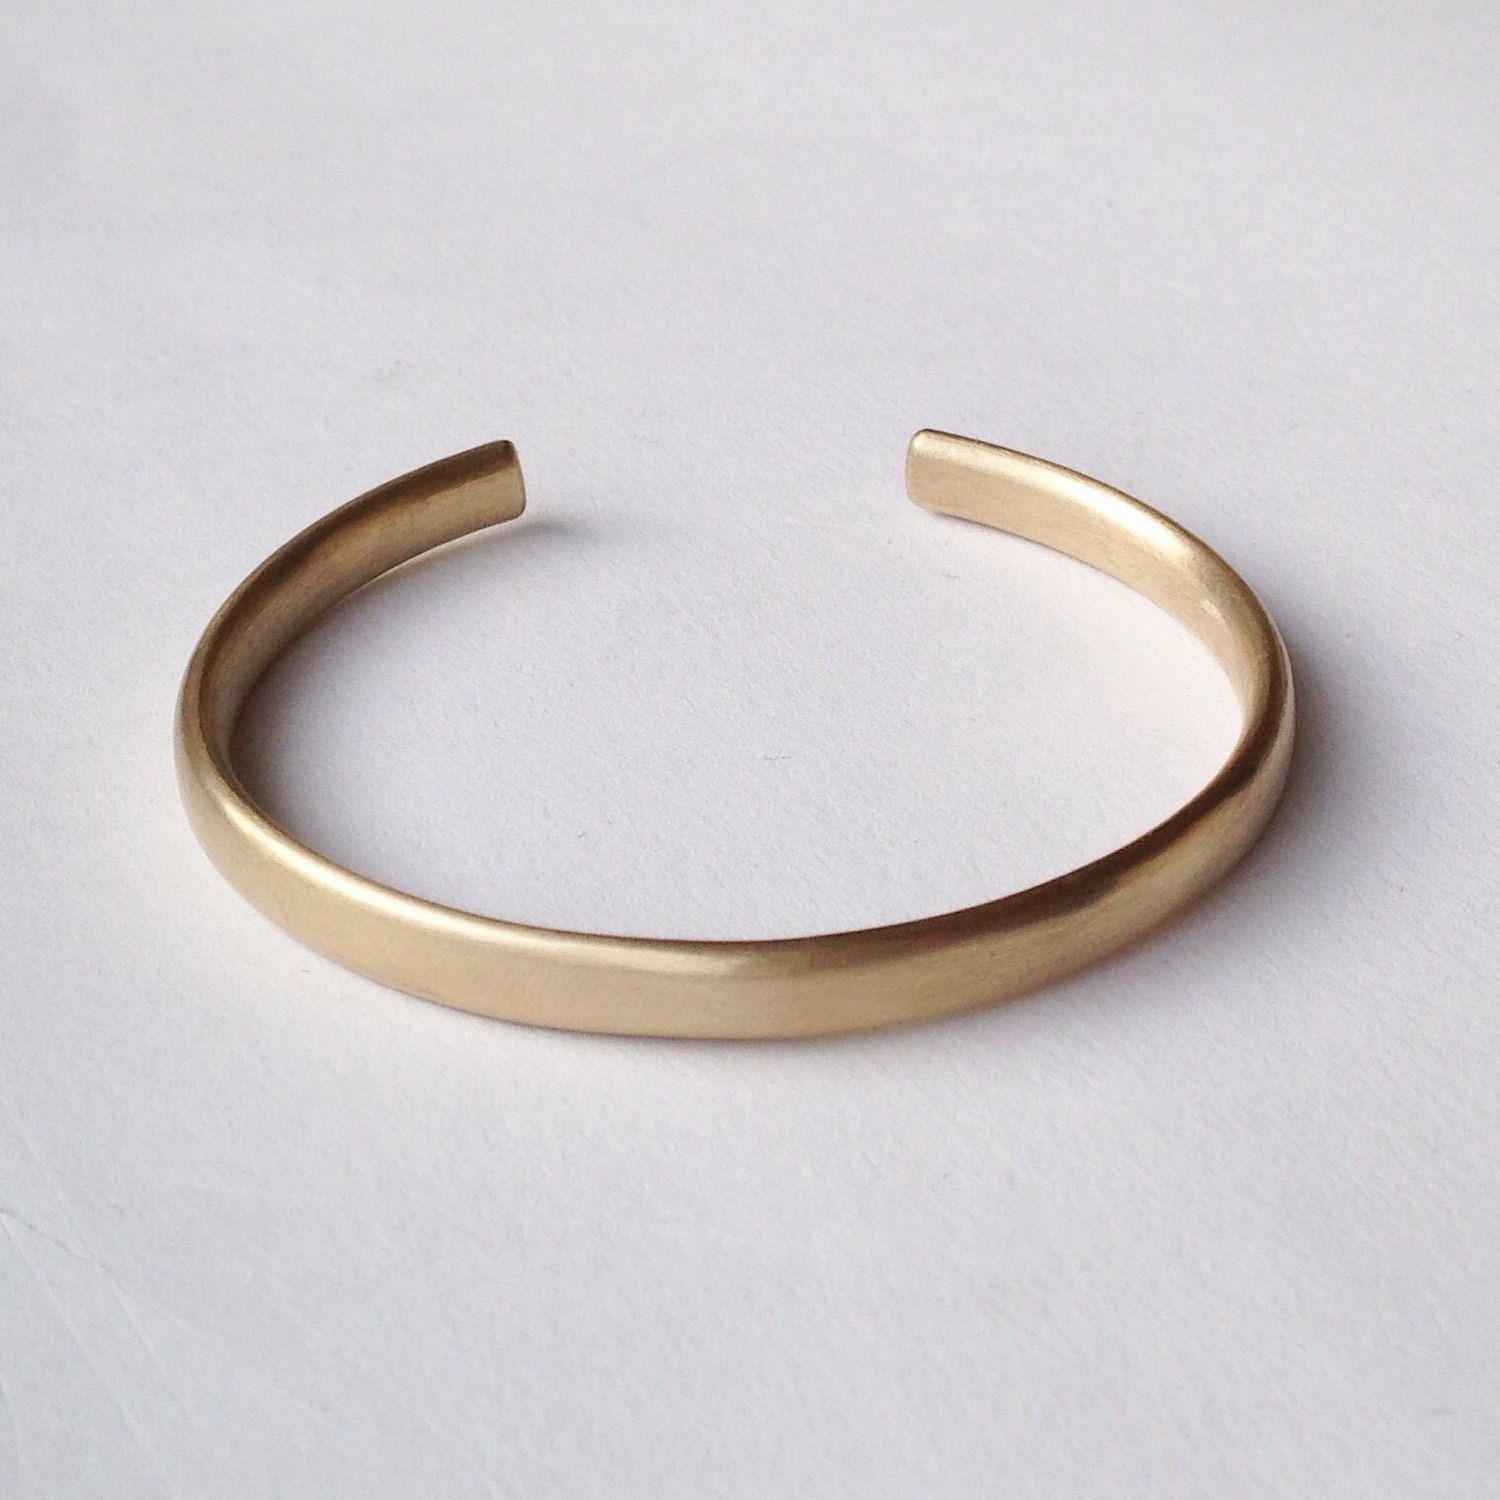 hires vermeil double links bangles cuff narrative bangle us open london link en yellow gold of